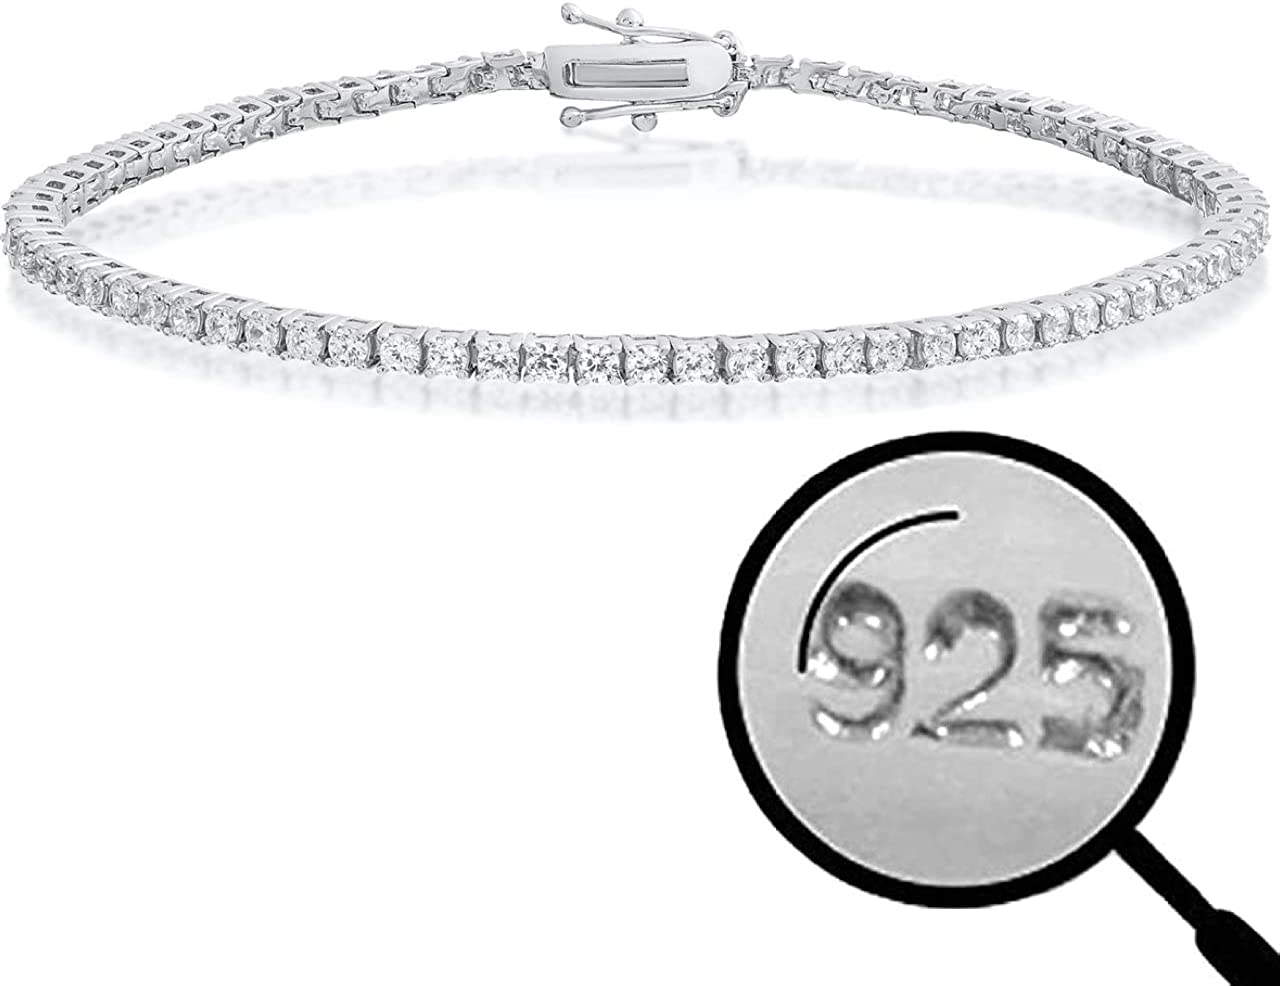 Thin /& Great For Classy Everyday Look 6-8.5 Iced Diamond One Row Bracelet Real Solid 925 Sterling Silver 2mm CZ Tennis Bracelet